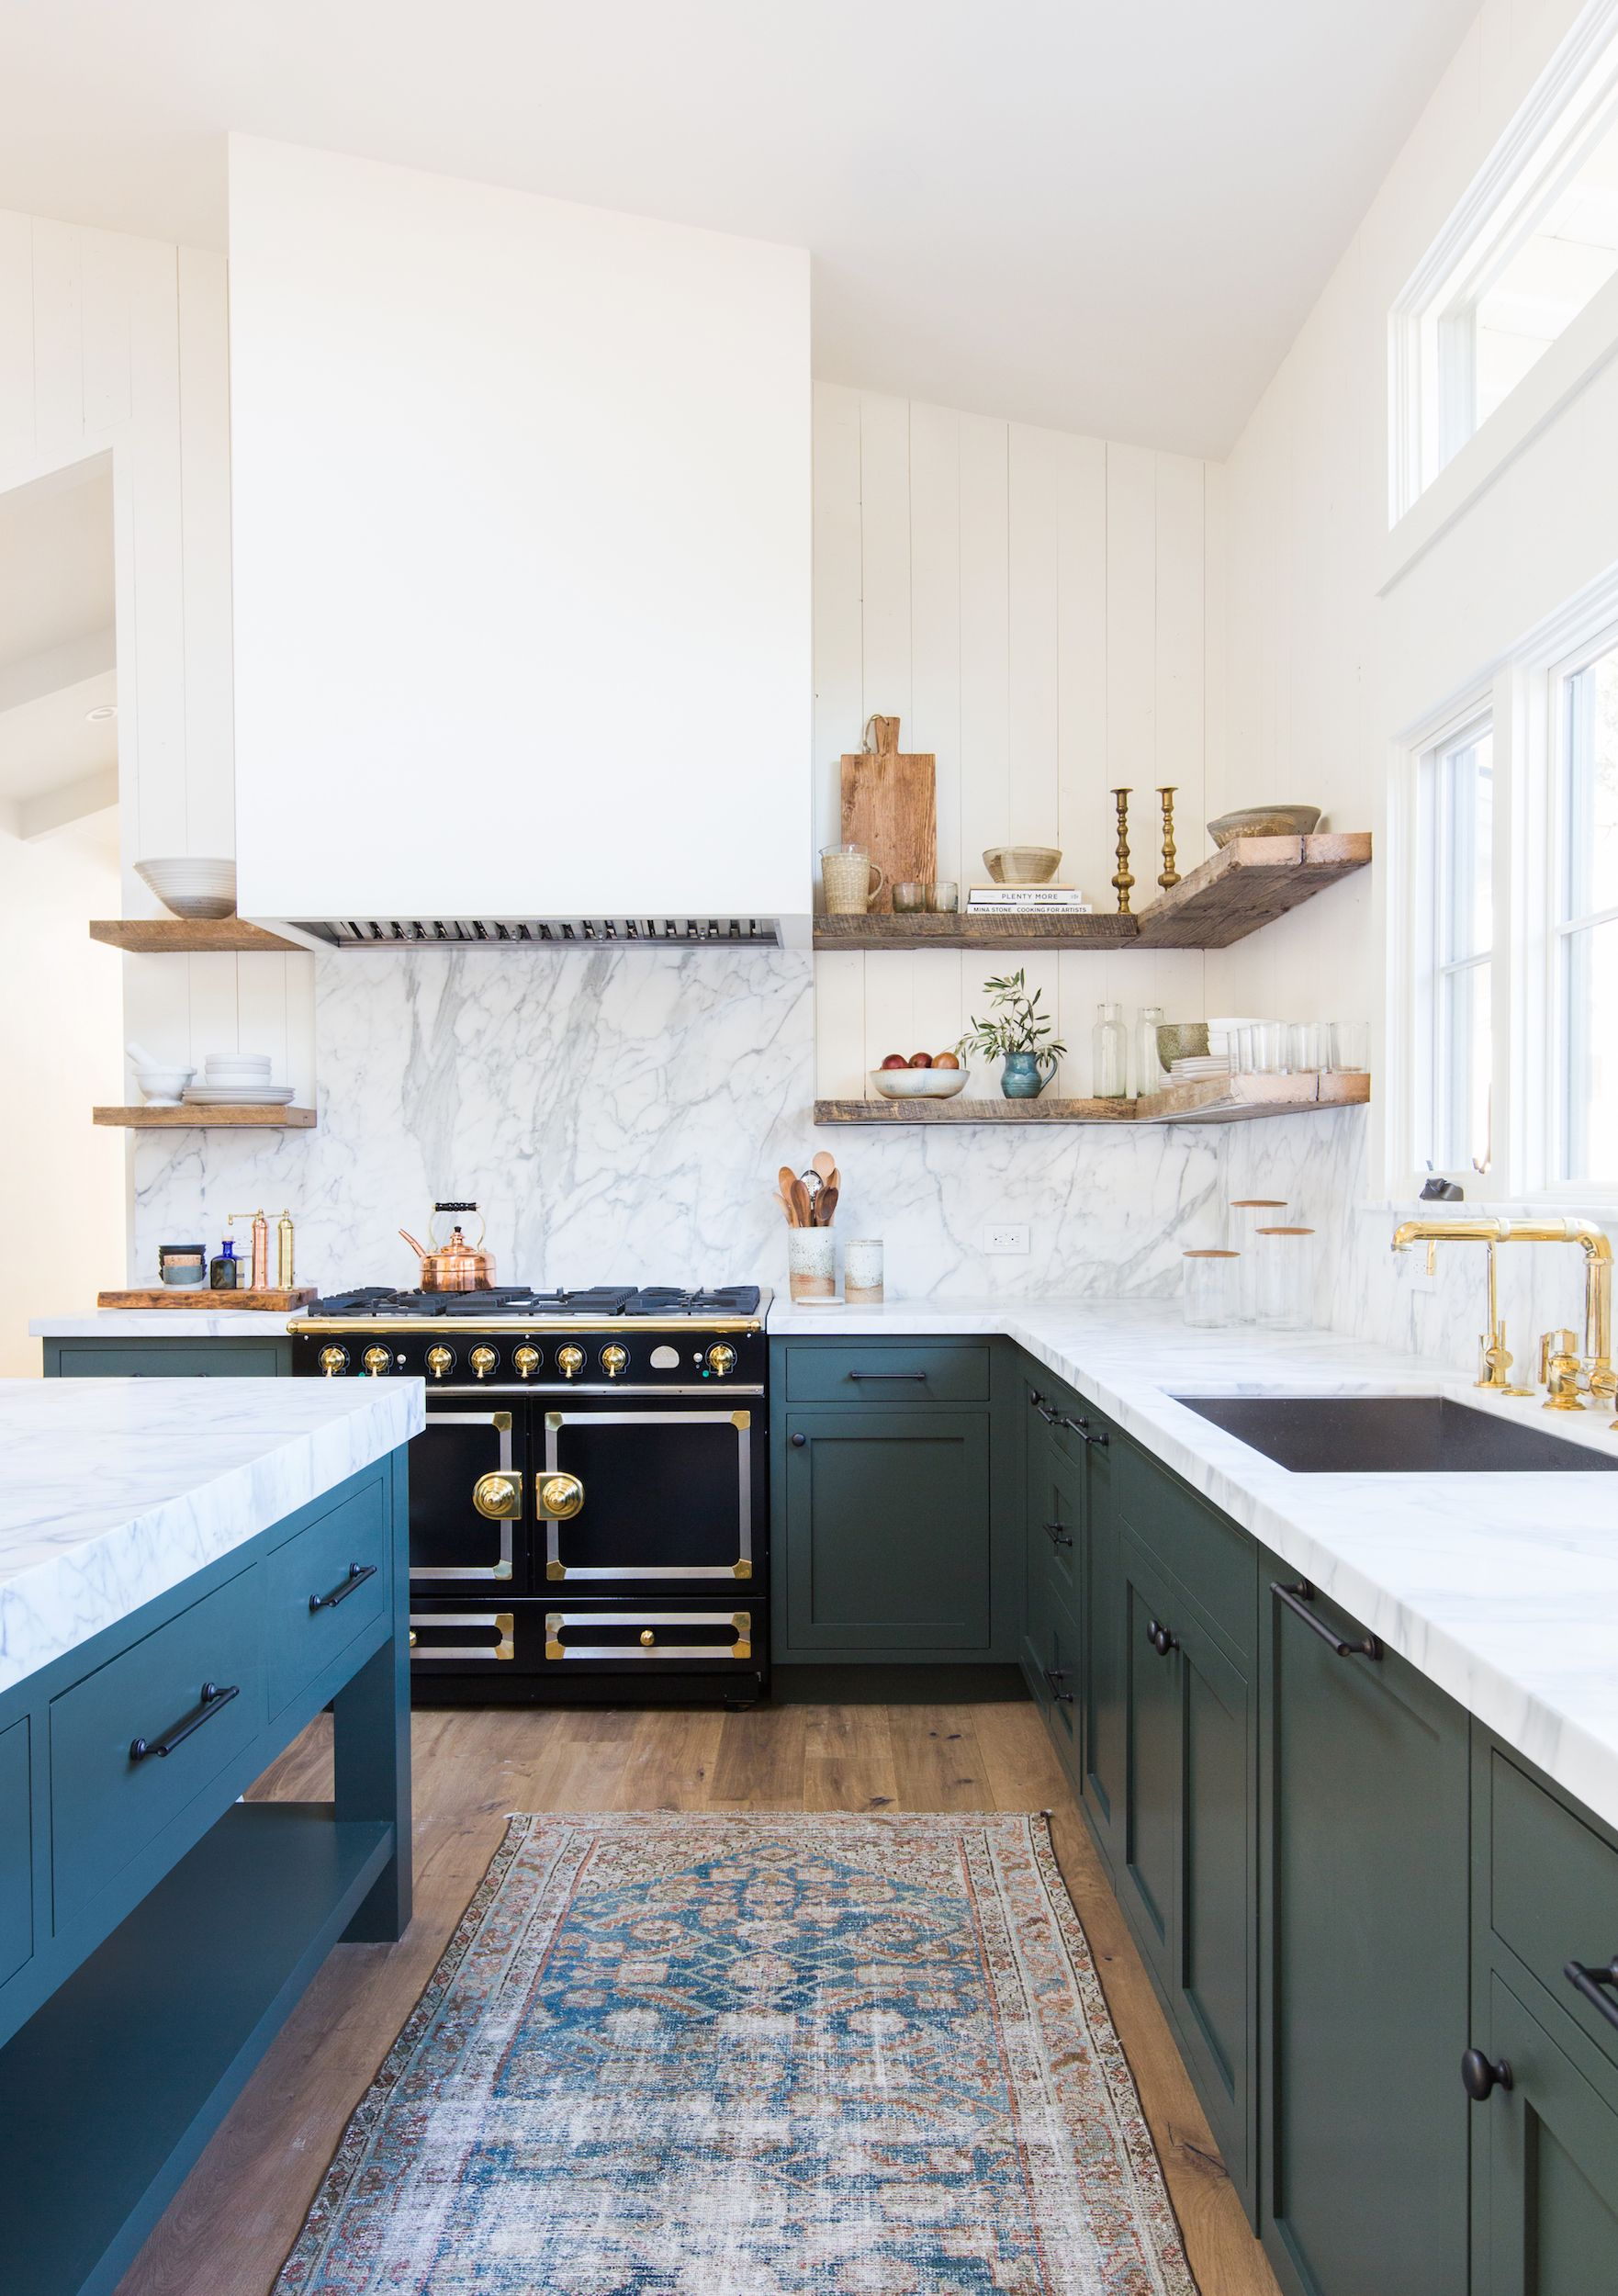 surprising Open Cabinets In Kitchen Part - 6: House Beautiful